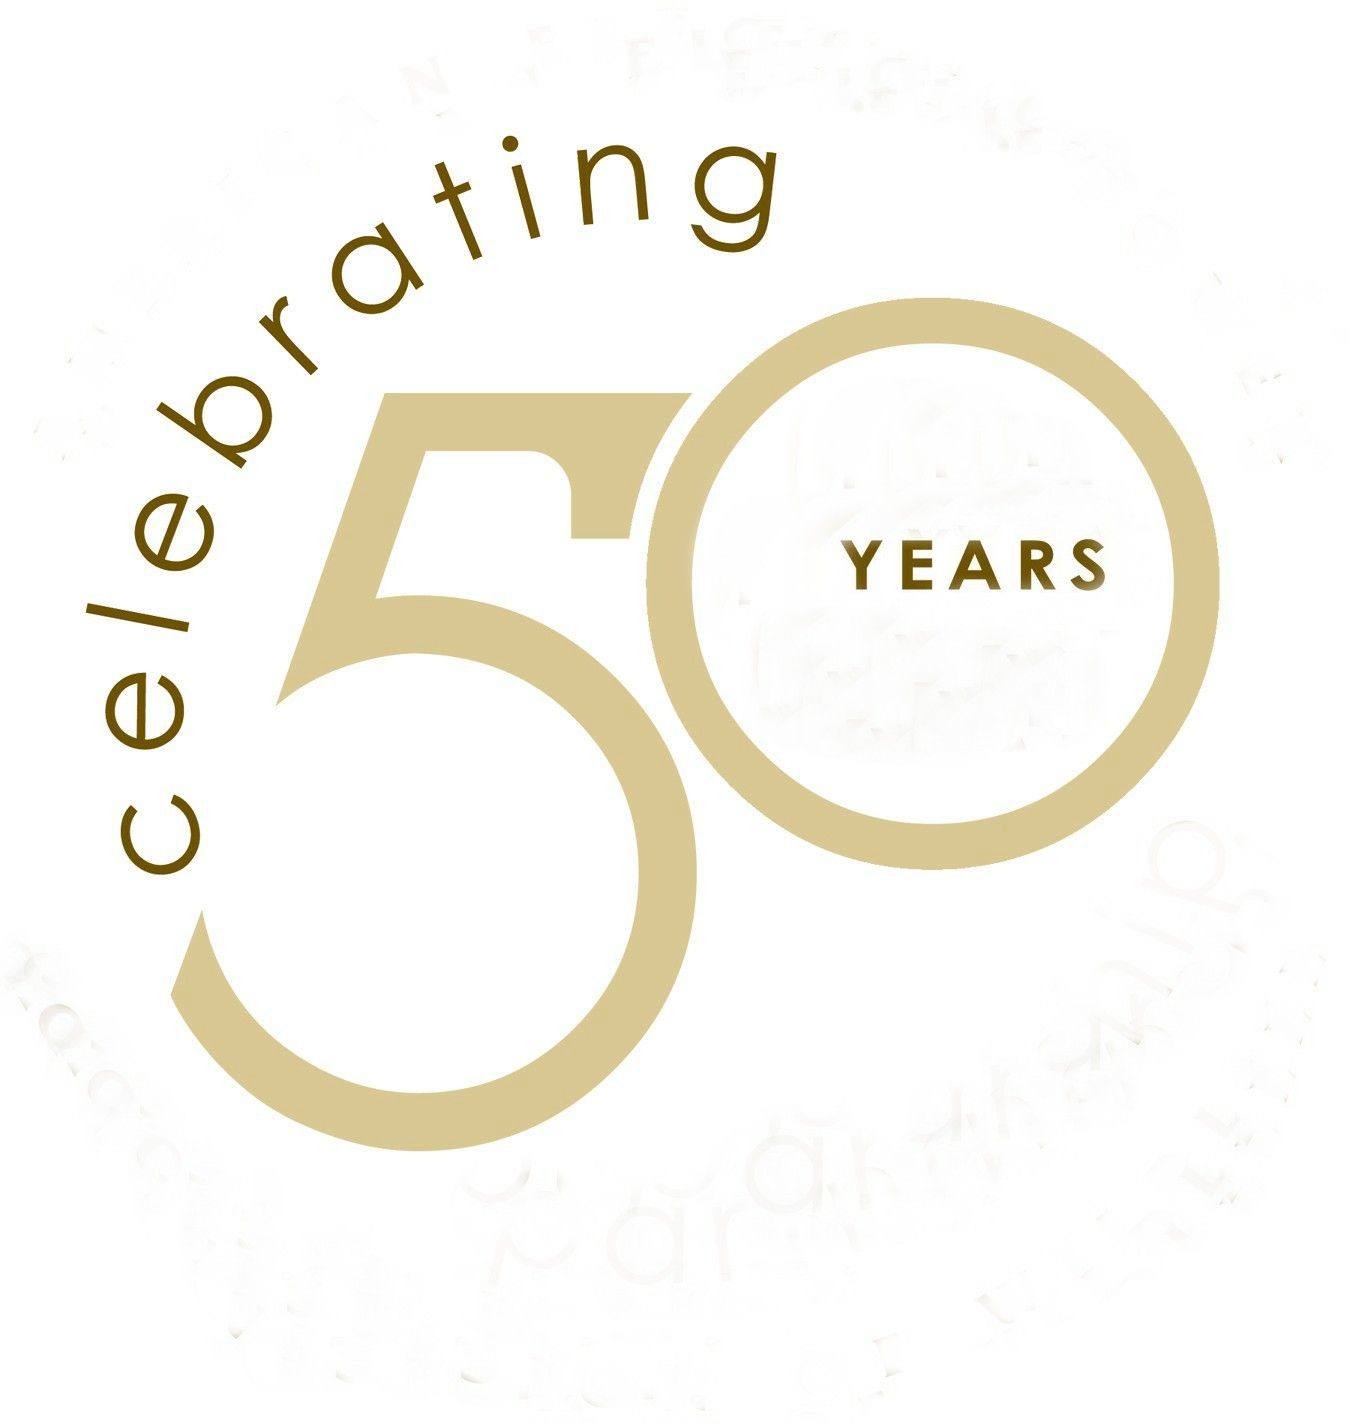 free clip art. Anniversary clipart 50 year